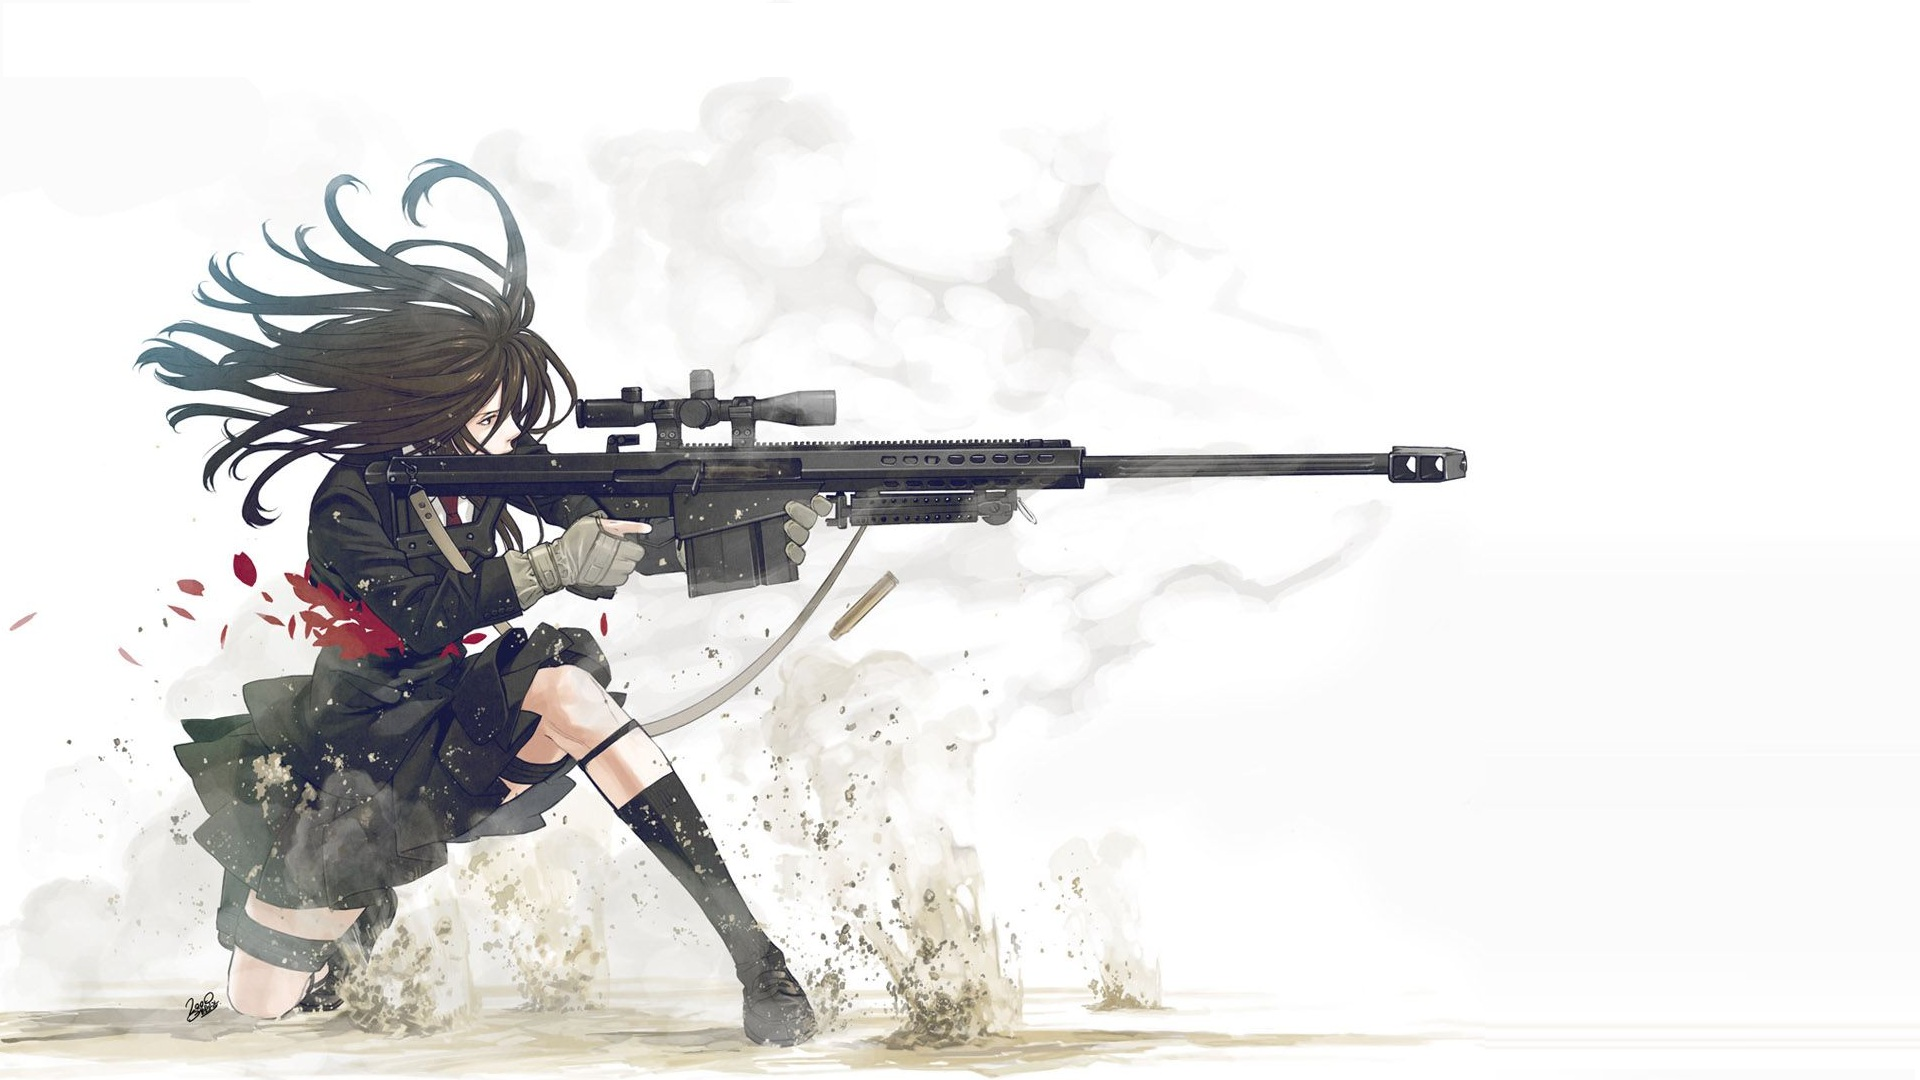 10+ images about War Anime Wallpapers on Pinterest | A wolf